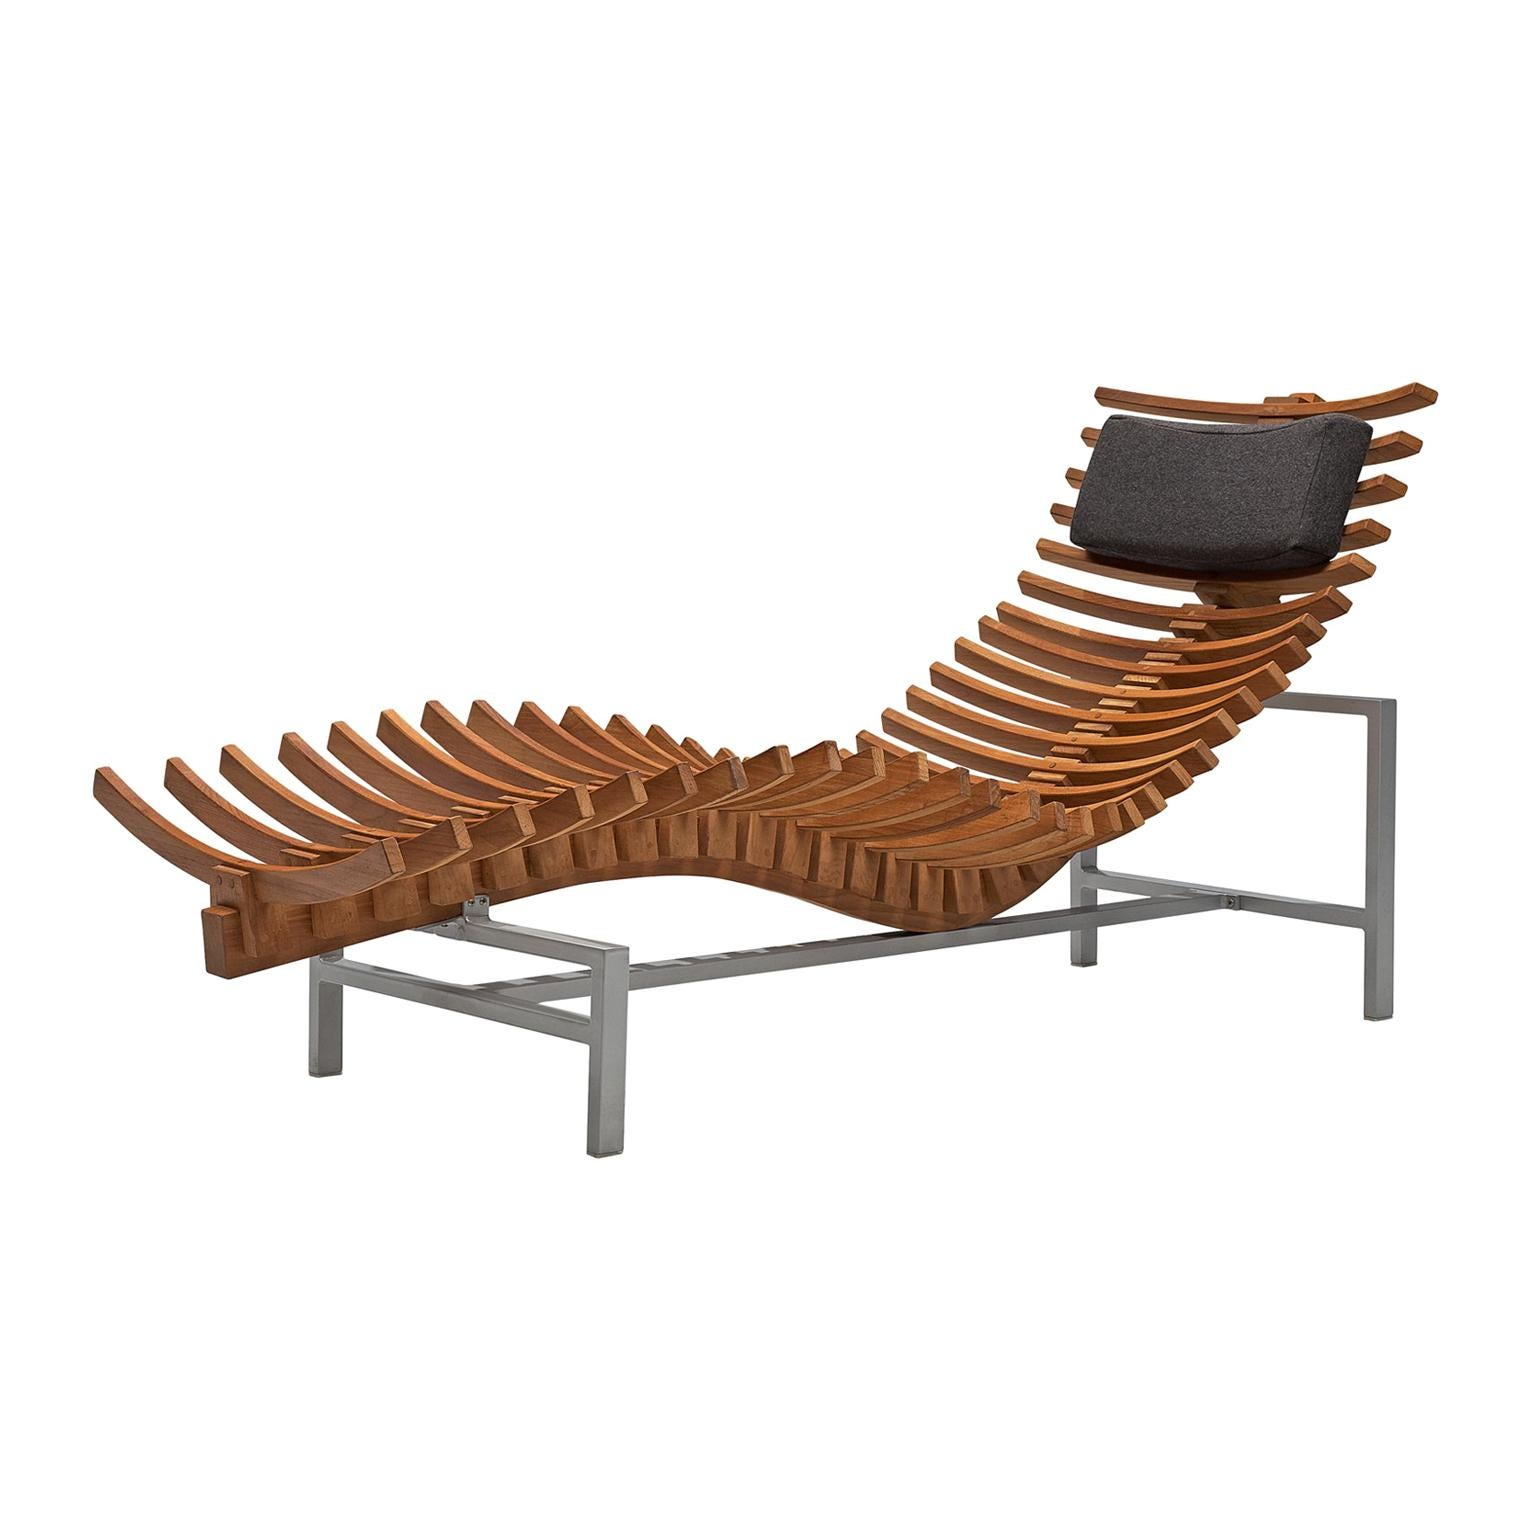 Chaise Spoon Glacier Sculptural Chaise Longue Cast In Optical Glass By Brodie Neill